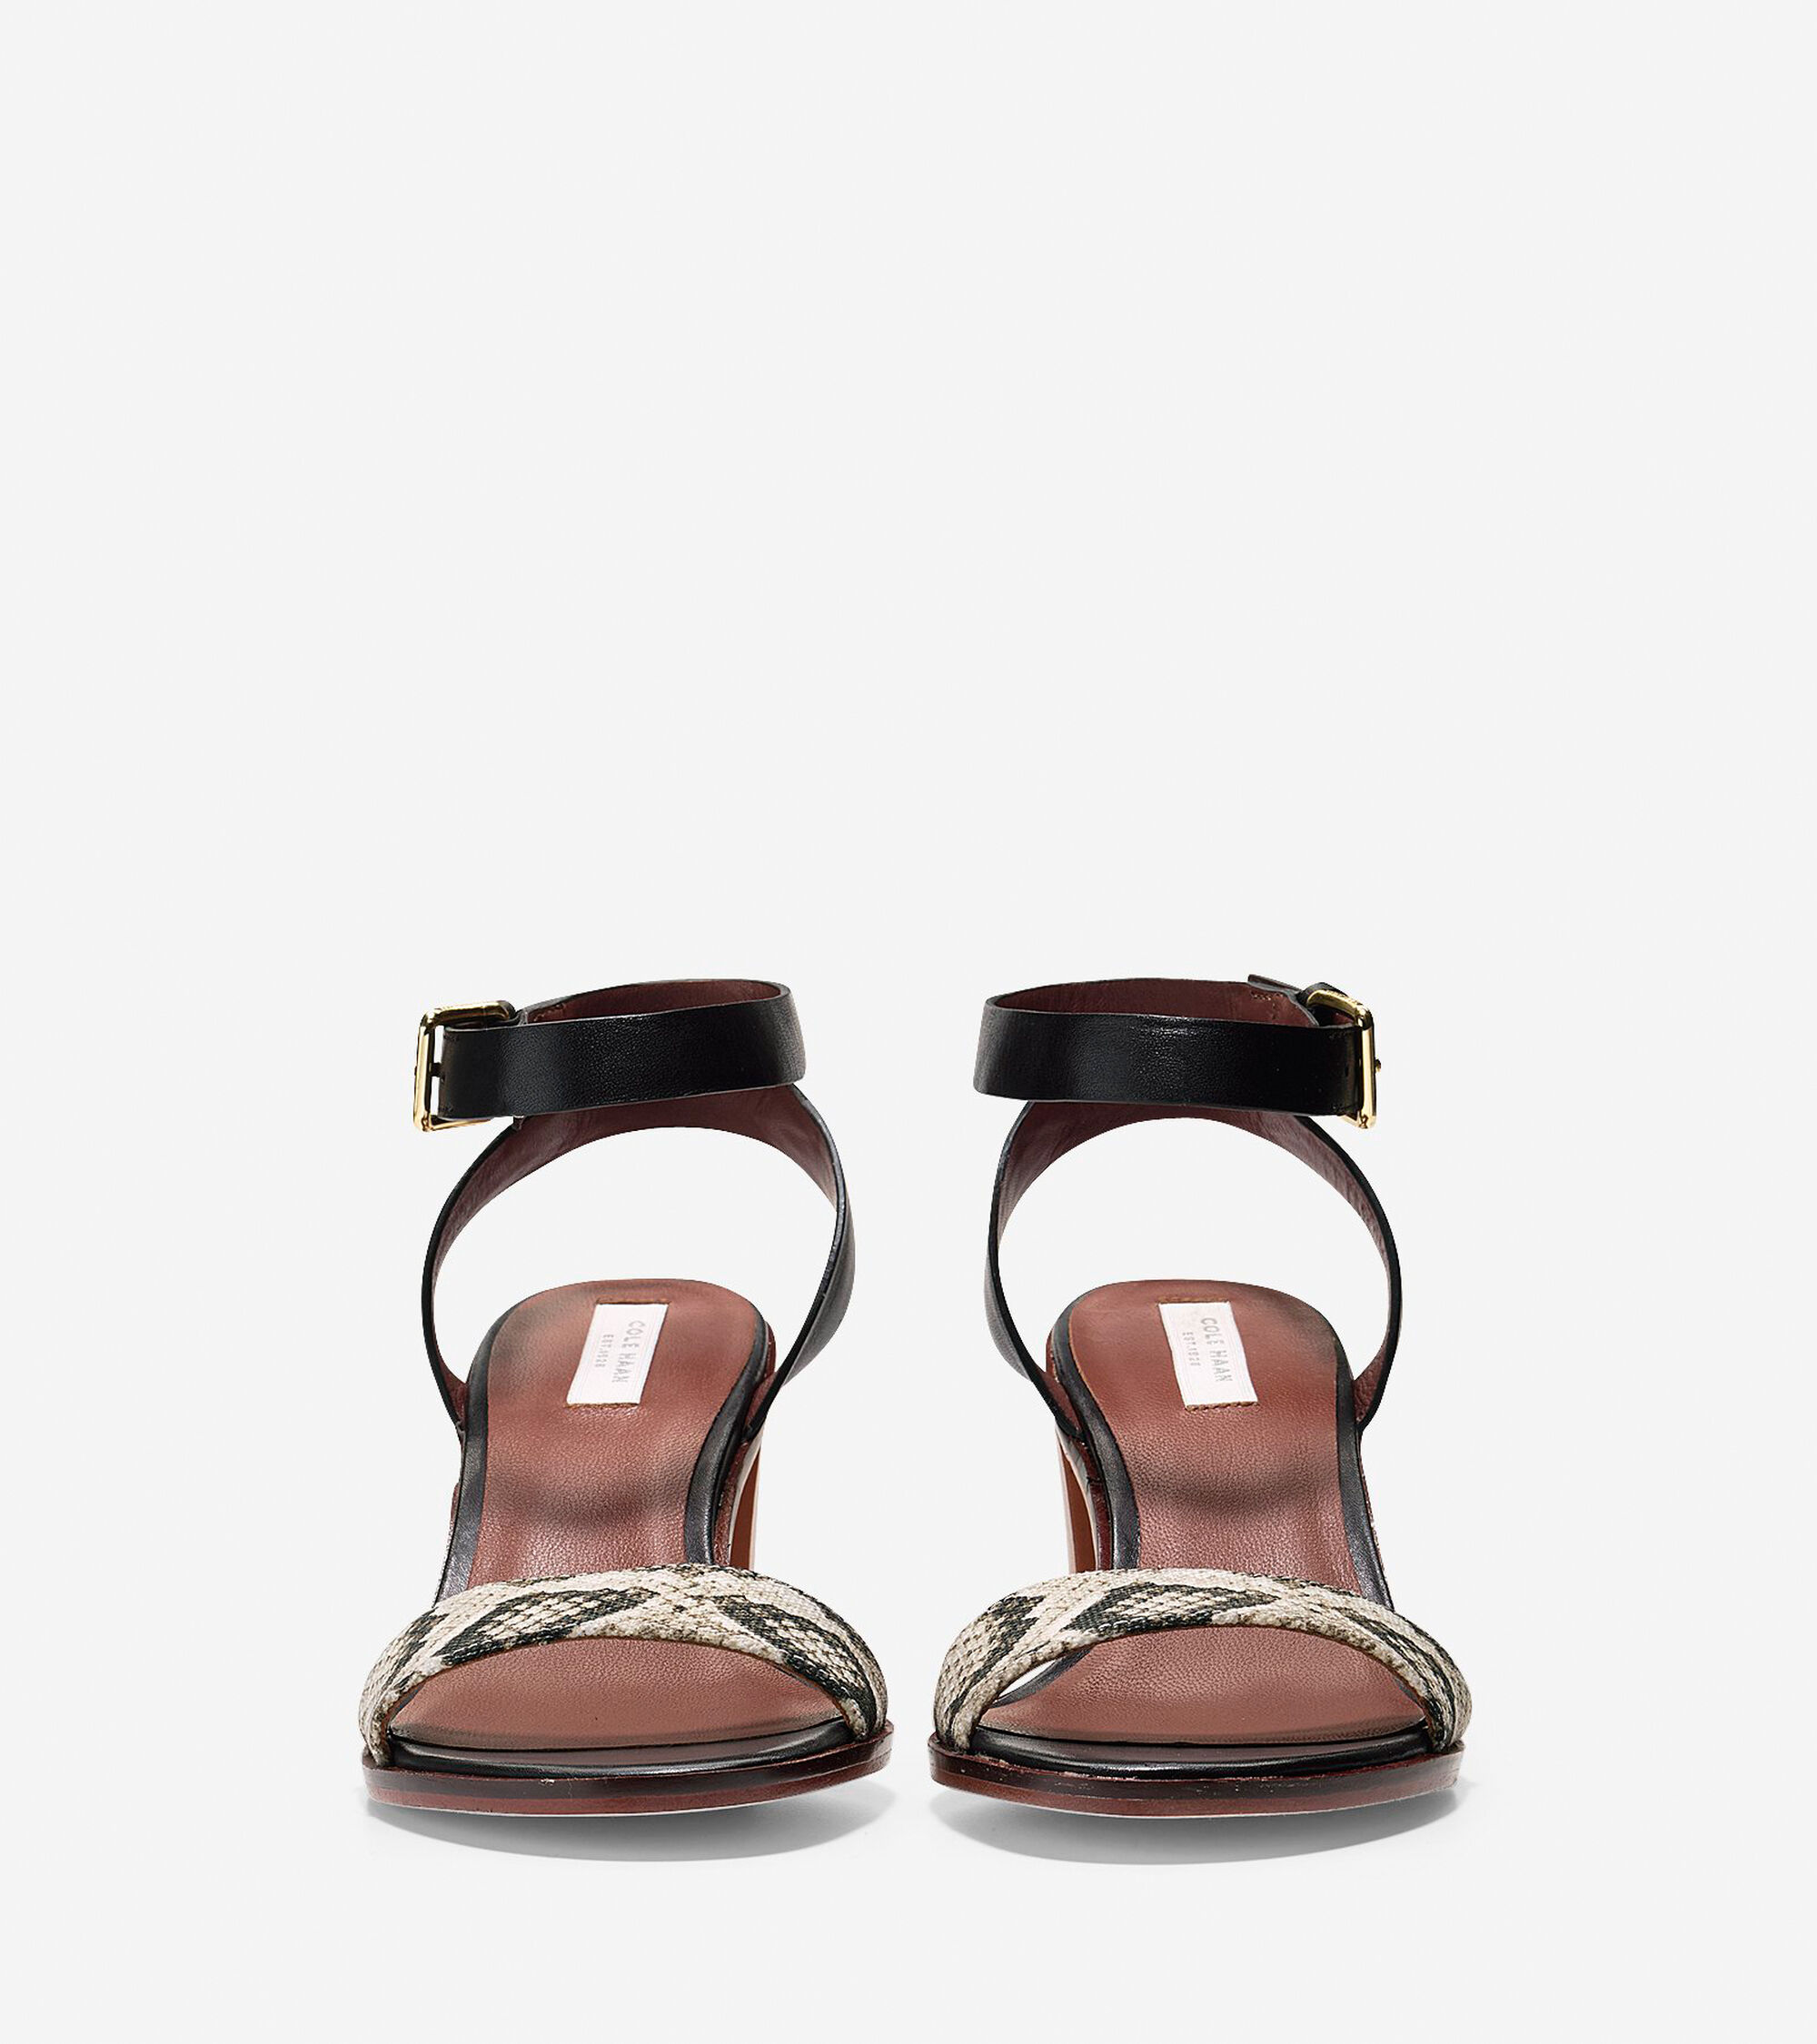 a524dfdfc Cambon Mid Sandals 65mm in Black-Roccia Snake